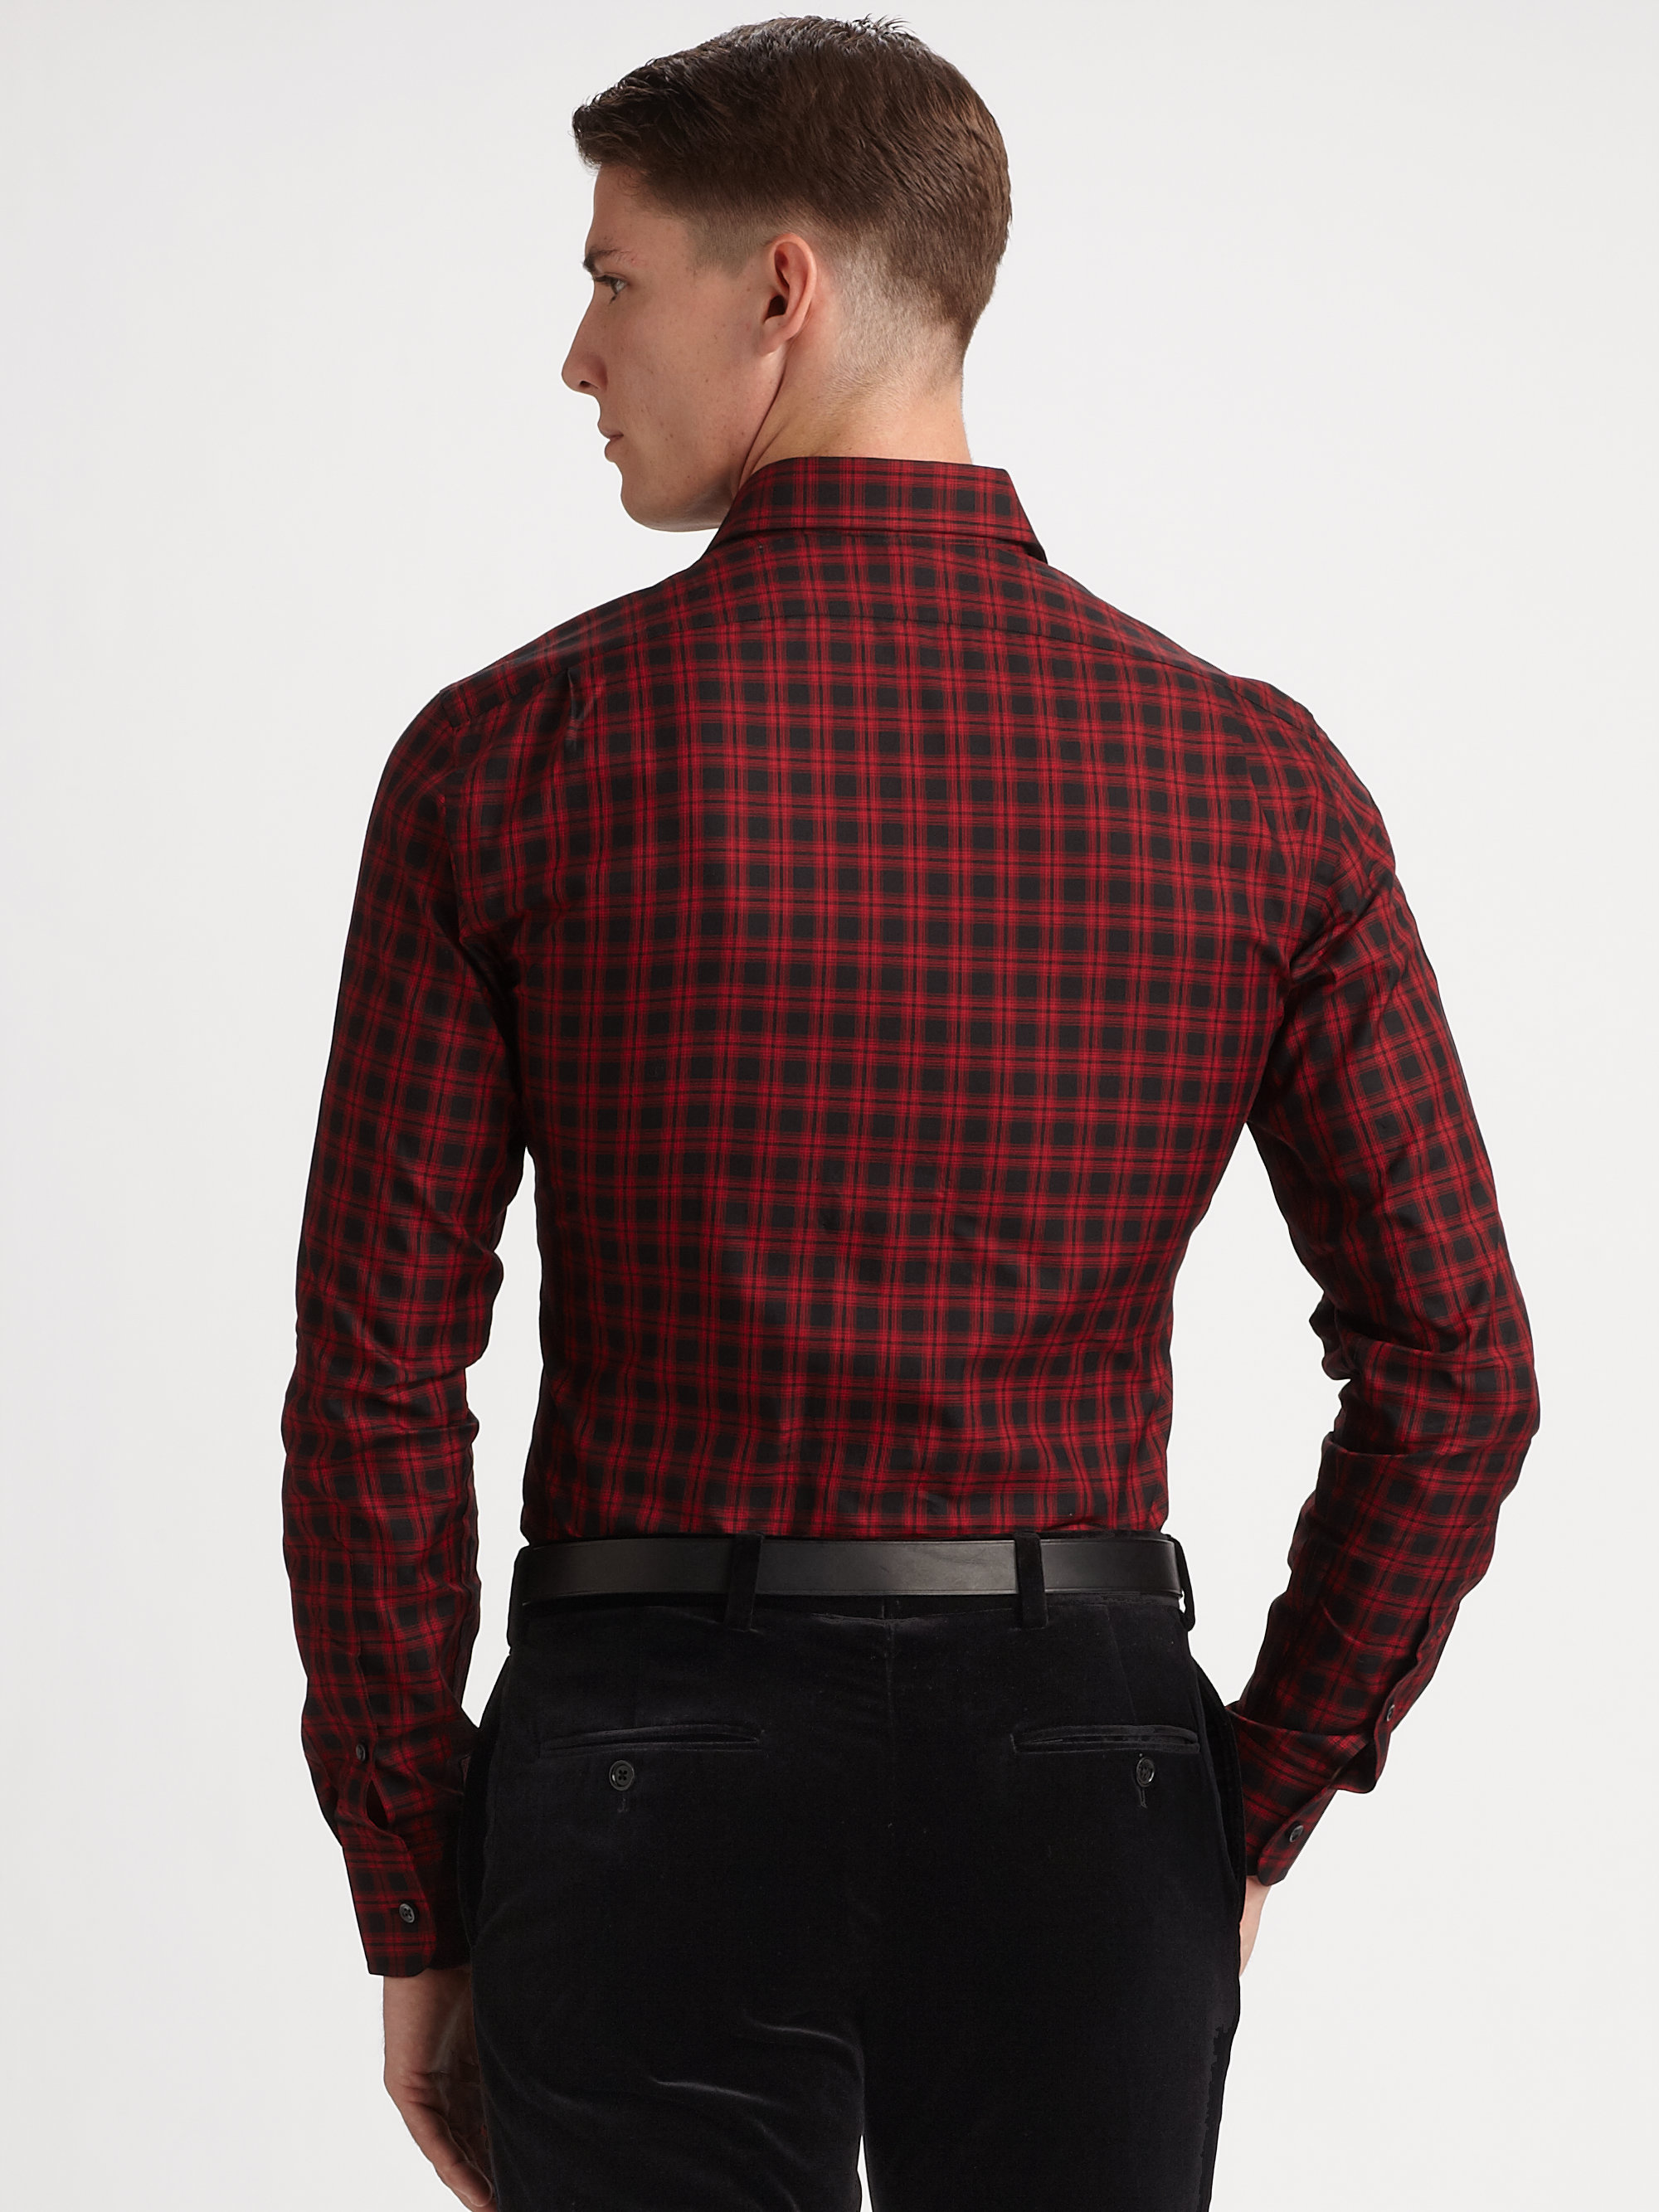 Real Lyst Ralph Lauren Black Label Bond Cotton Twill Check Shirt In Red 2a000 5e9d6